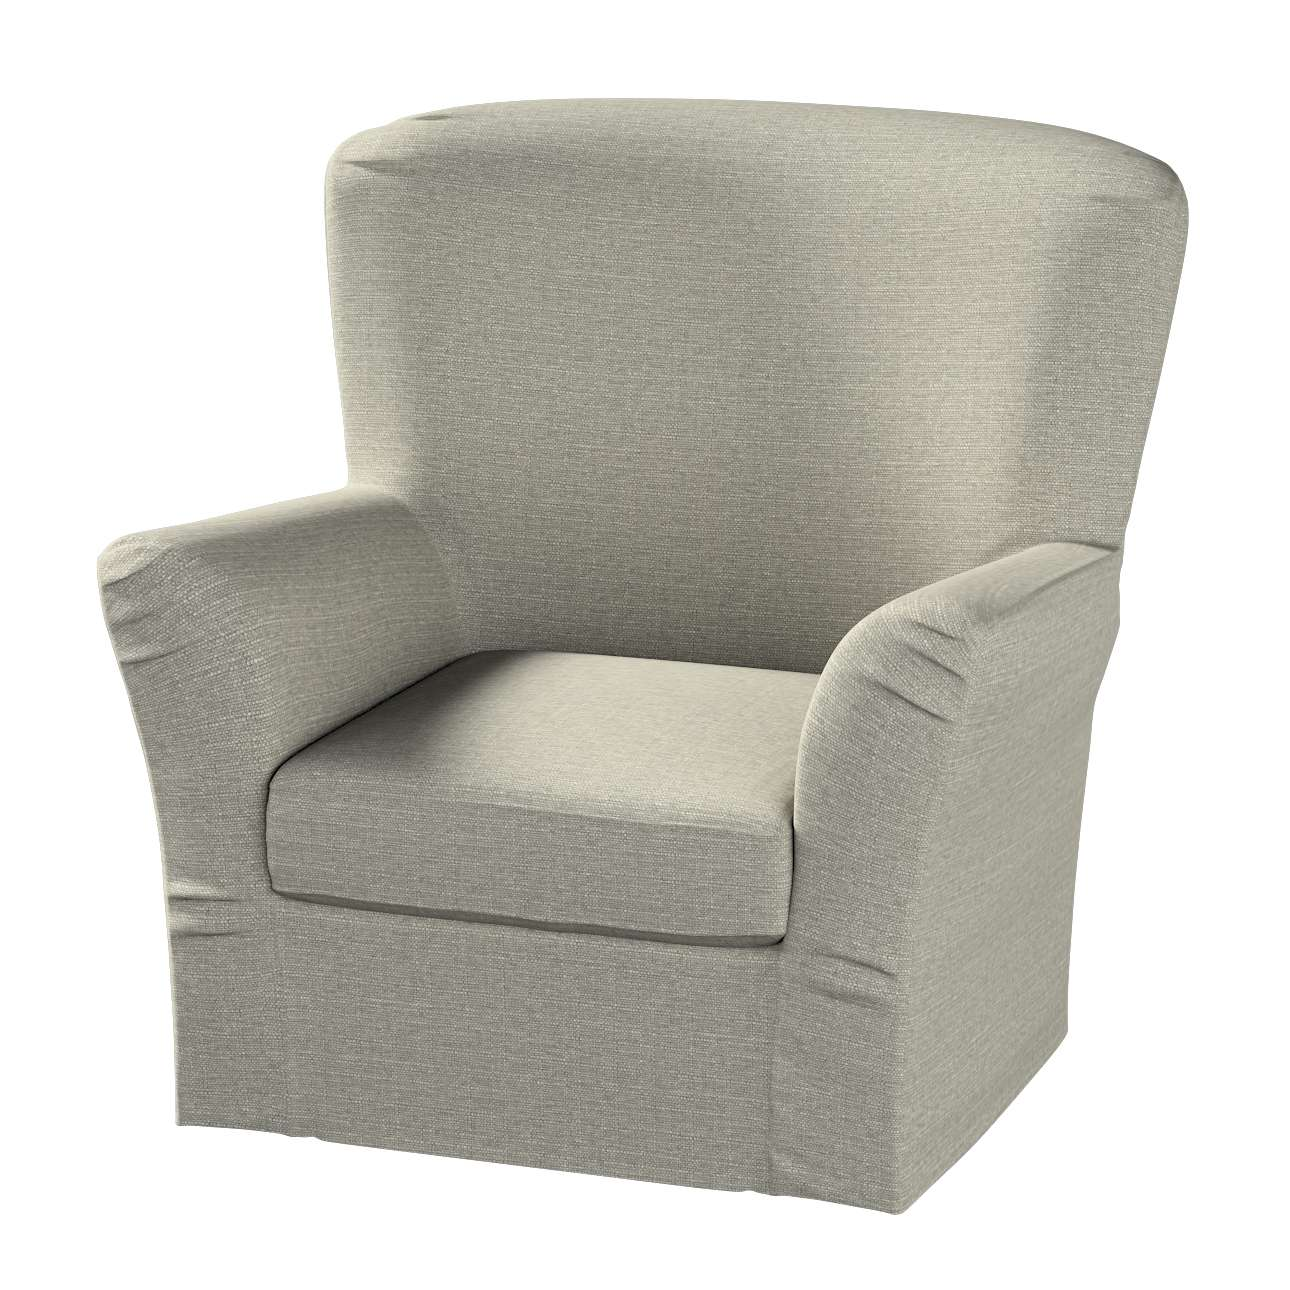 Tomelilla armchair  Tomelilla armchair in collection Granada, fabric: 104-91